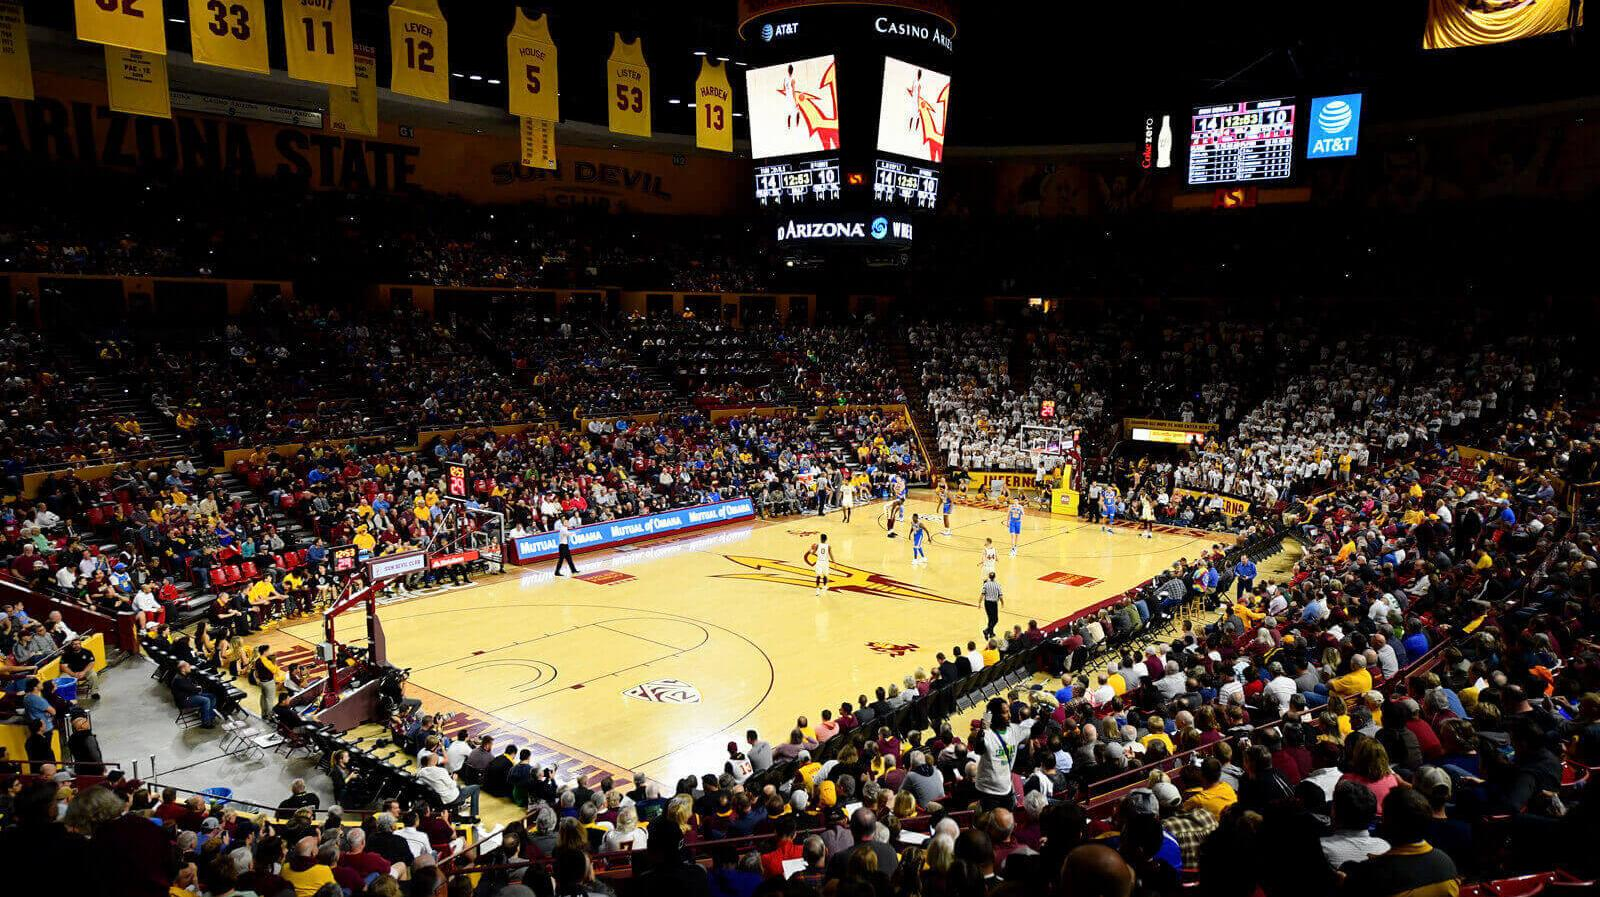 The crowd watches a student basketball game at Desert Financial Arena